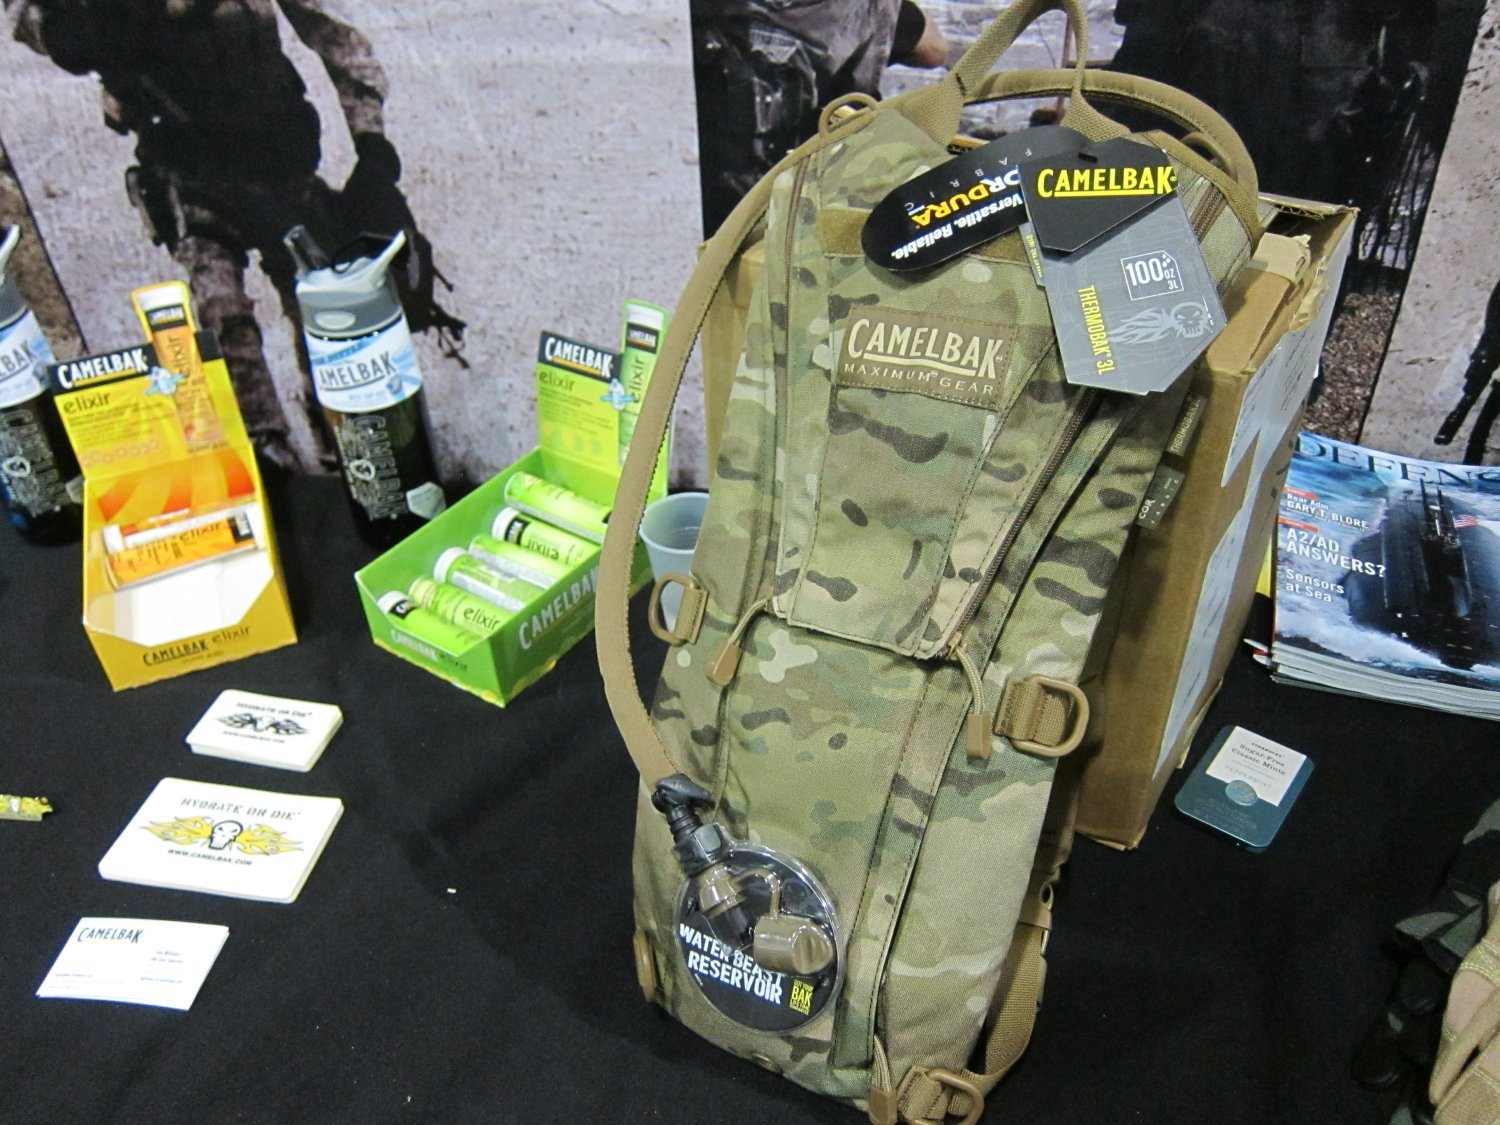 Camelbak Thermobak AB Tactical Hydration Pack Crye MultiCam SOFIC 2011 3 <!  :en  >Camelbak Ambush AB 500, Thermobak AB, and Linchpin Tactical Hydration Packs/Reservoirs with Direct Armor Attachment System (D.A.A.S.): Strap your tactical hydration directly to your tactical armor plate carrier/tactical vest system! <!  :  >